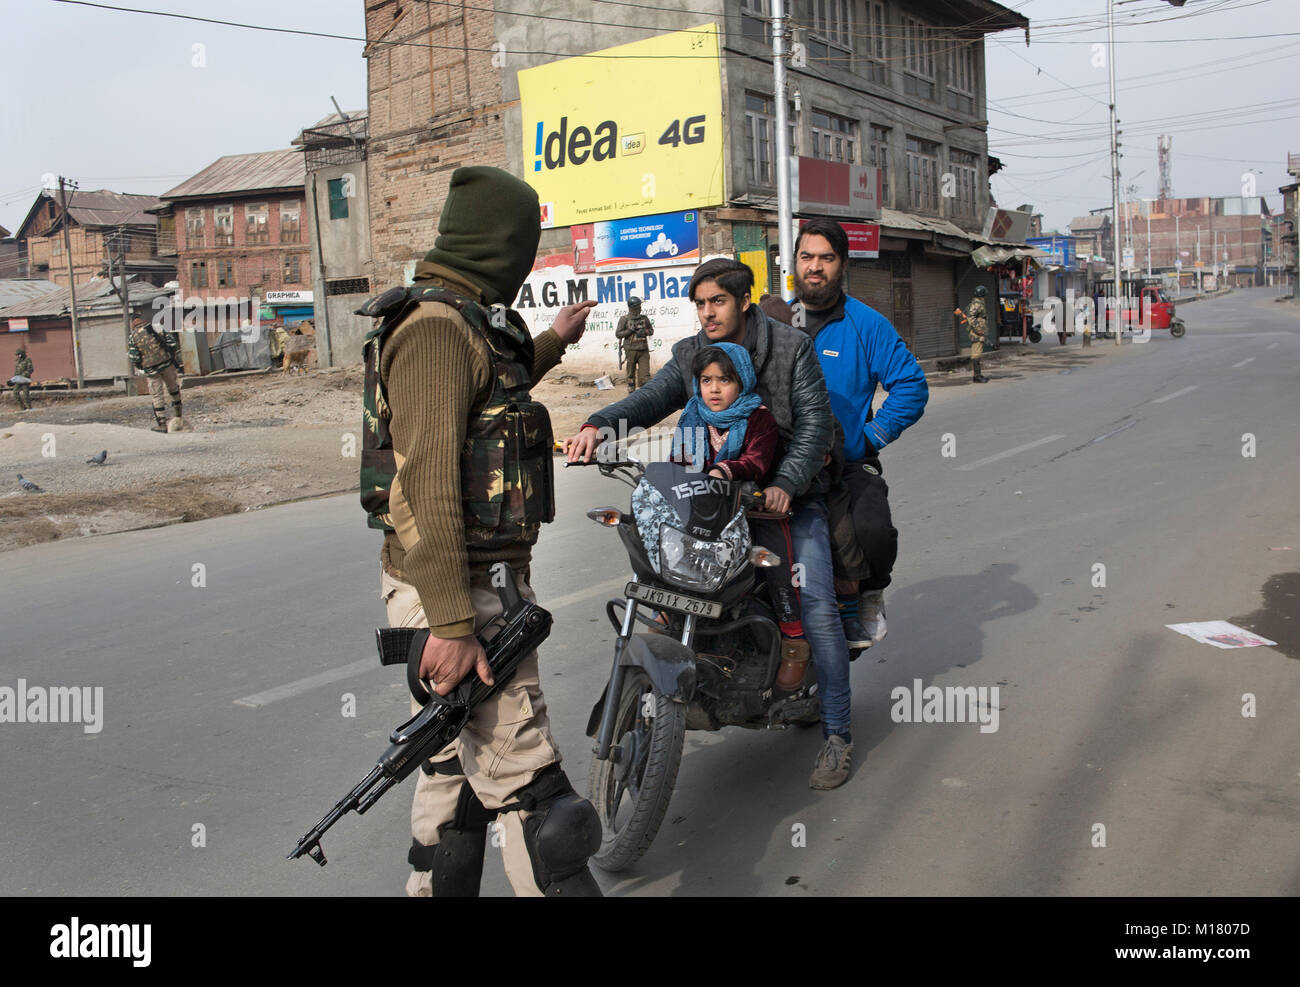 Srinagar, Indian-controlled Kashmir. 28th Jan, 2018. An Indian paramilitary trooper stops a motorcyclist during - Stock Image